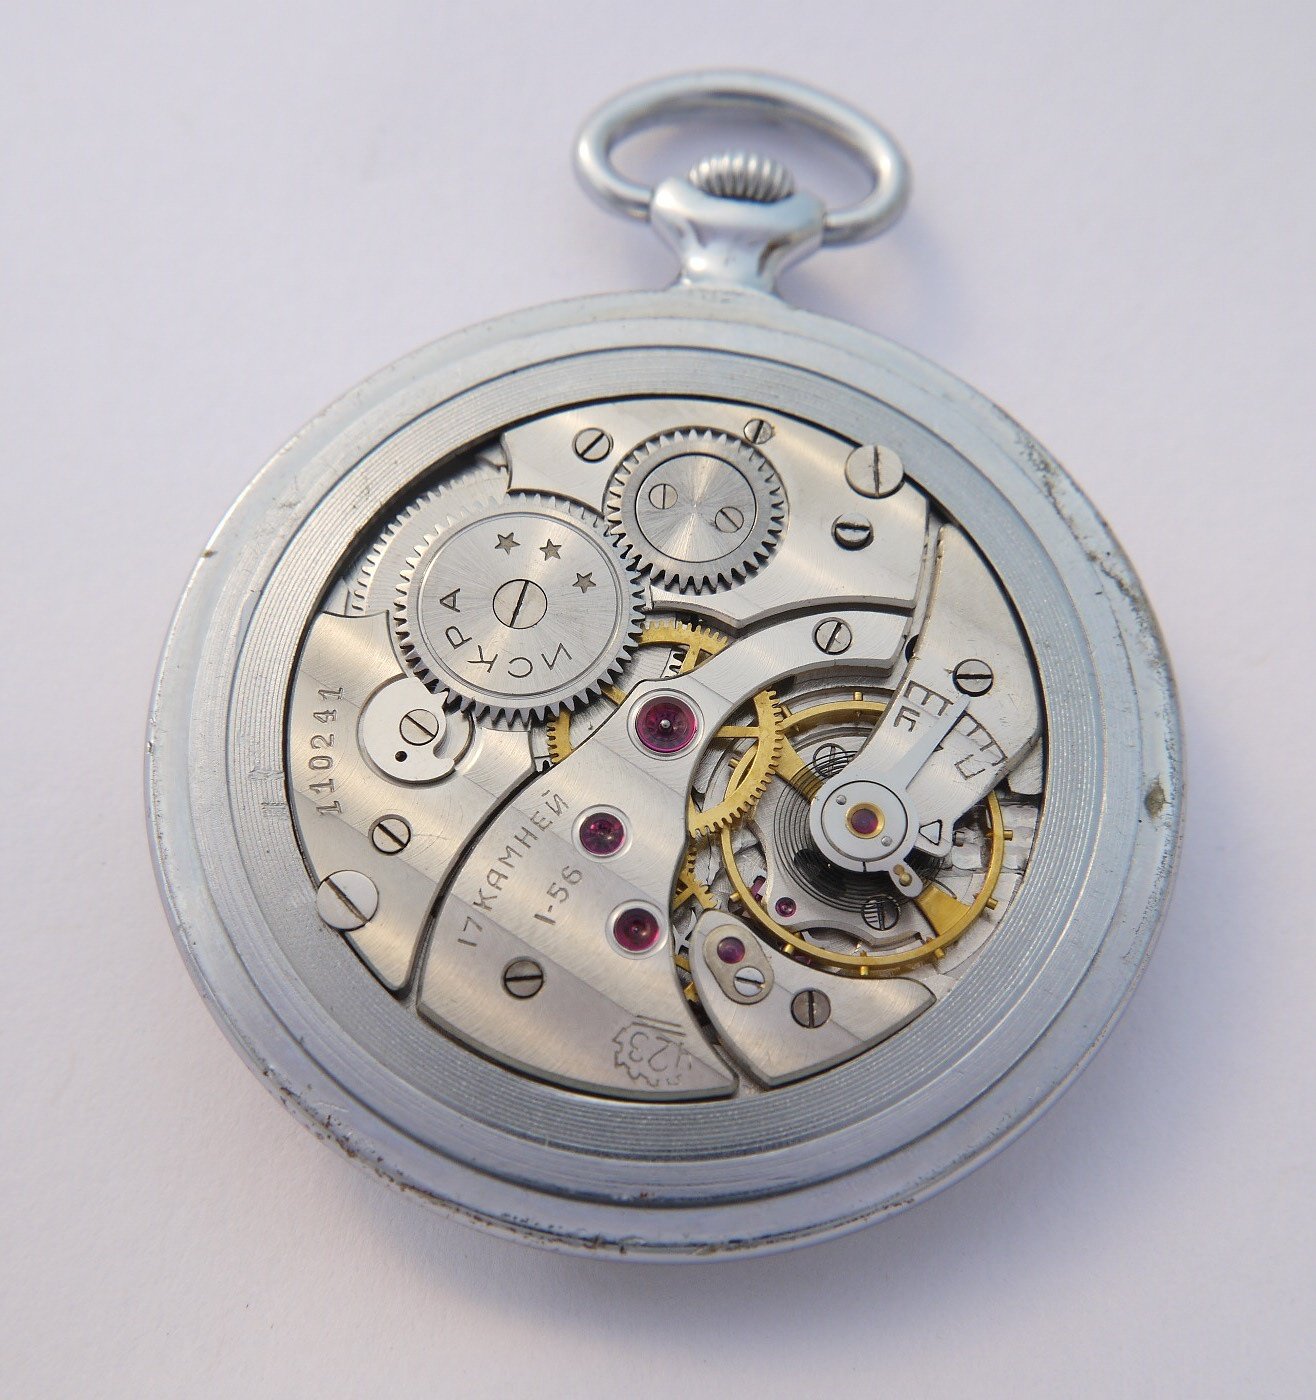 Molnija pocket watches for Linux watch